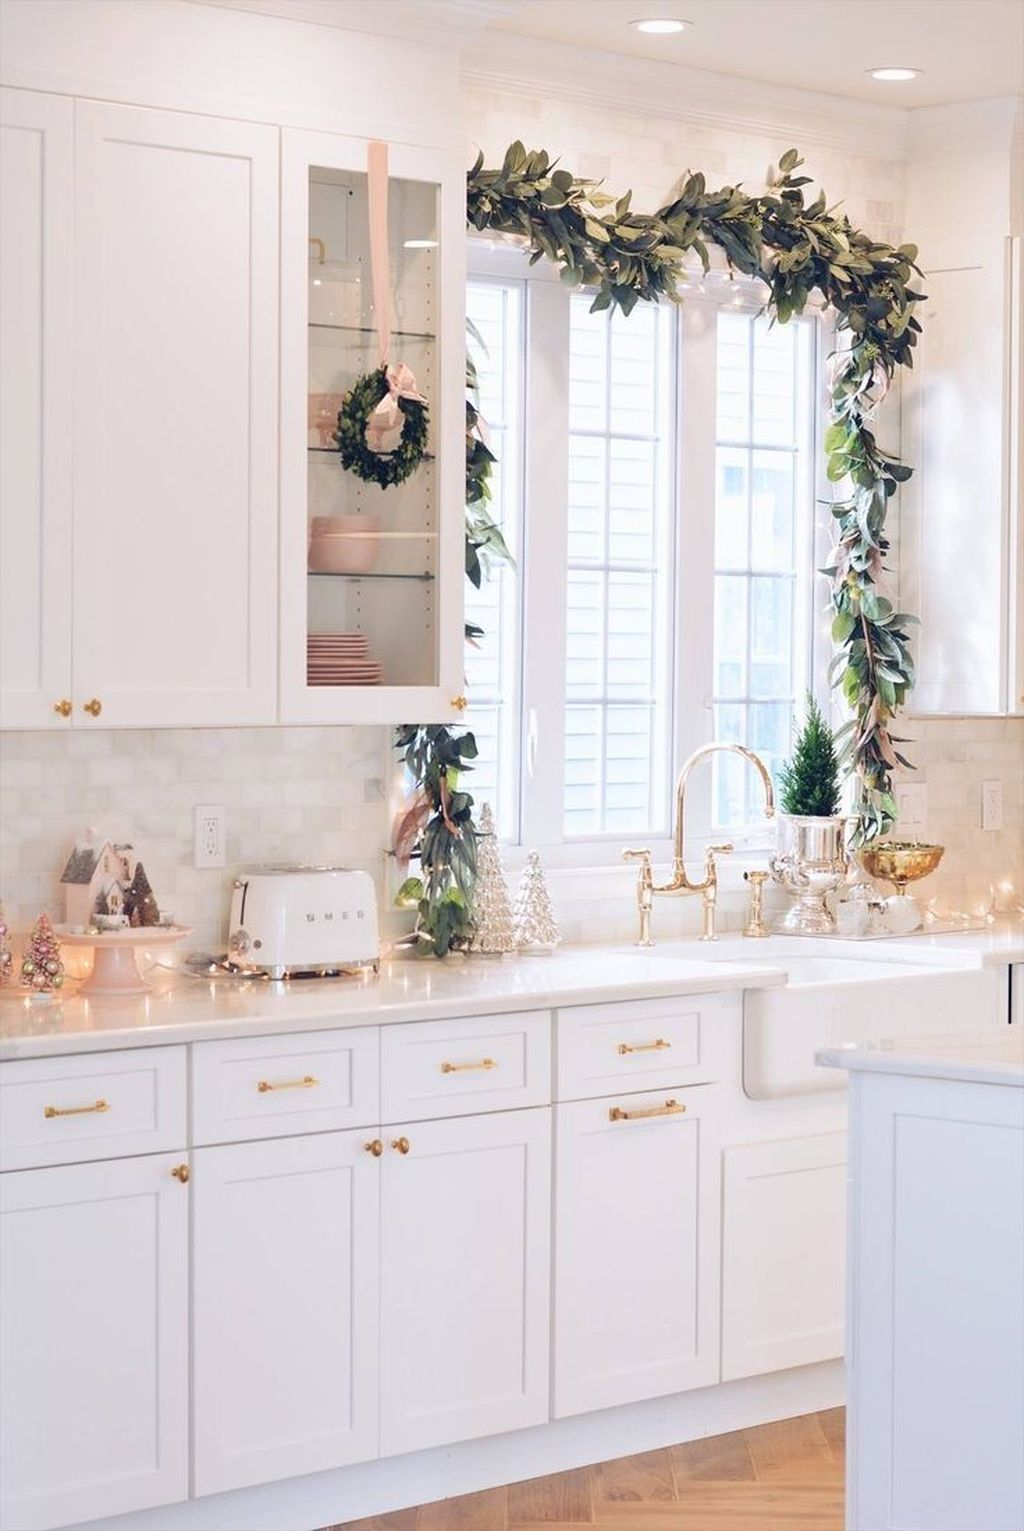 Inspiring Winter Kitchen Decor Ideas You Can Try 14